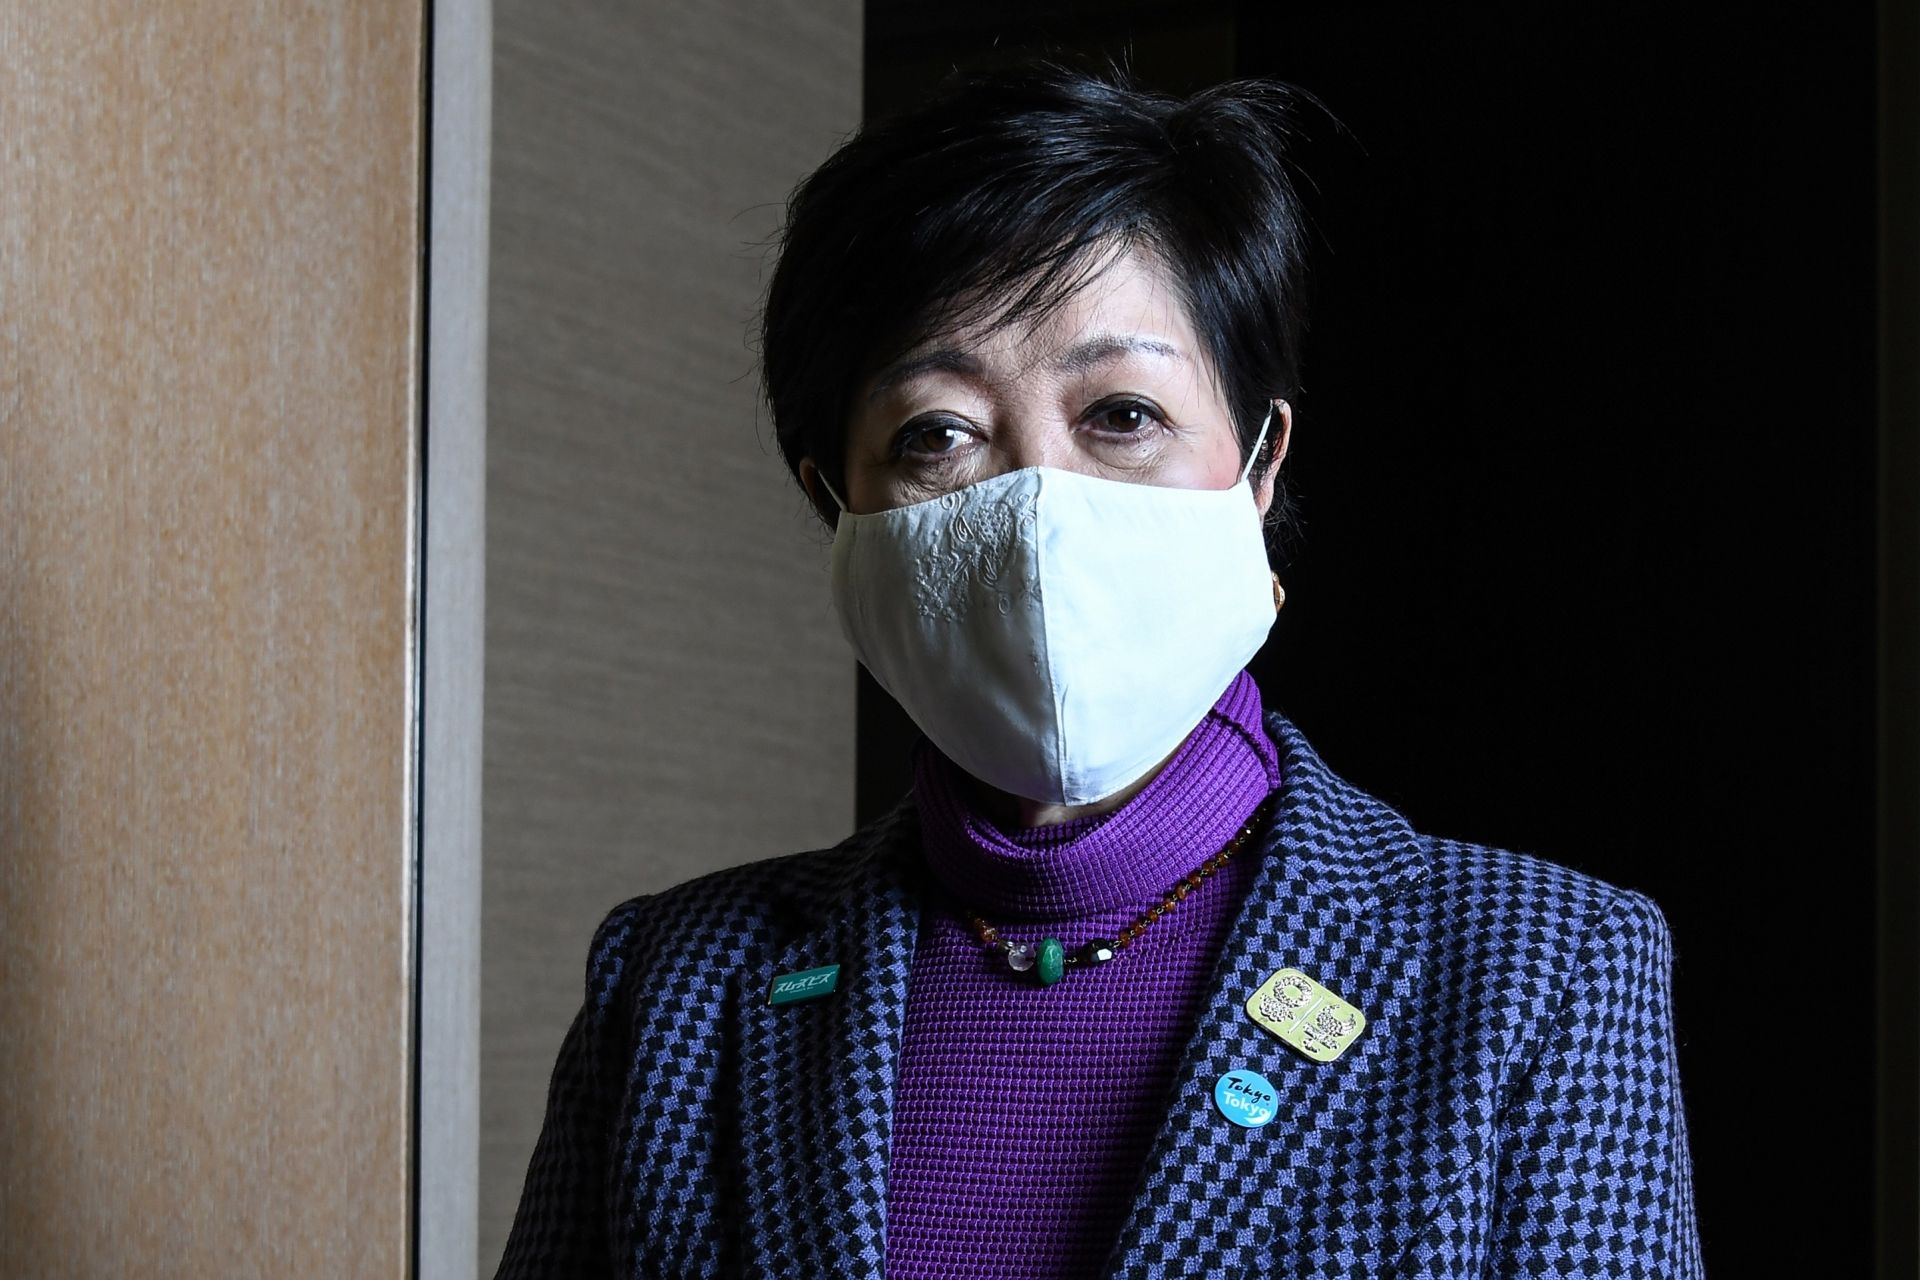 """Tokyo Governor Yuriko Koike poses before an interview with AFP in Tokyo on December 15, 2020, where she said she sees """"no circumstances"""" under which virus-postponed Tokyo 2020 Olympics will be cancelled. (Photo by Charly TRIBALLEAU / AFP)"""